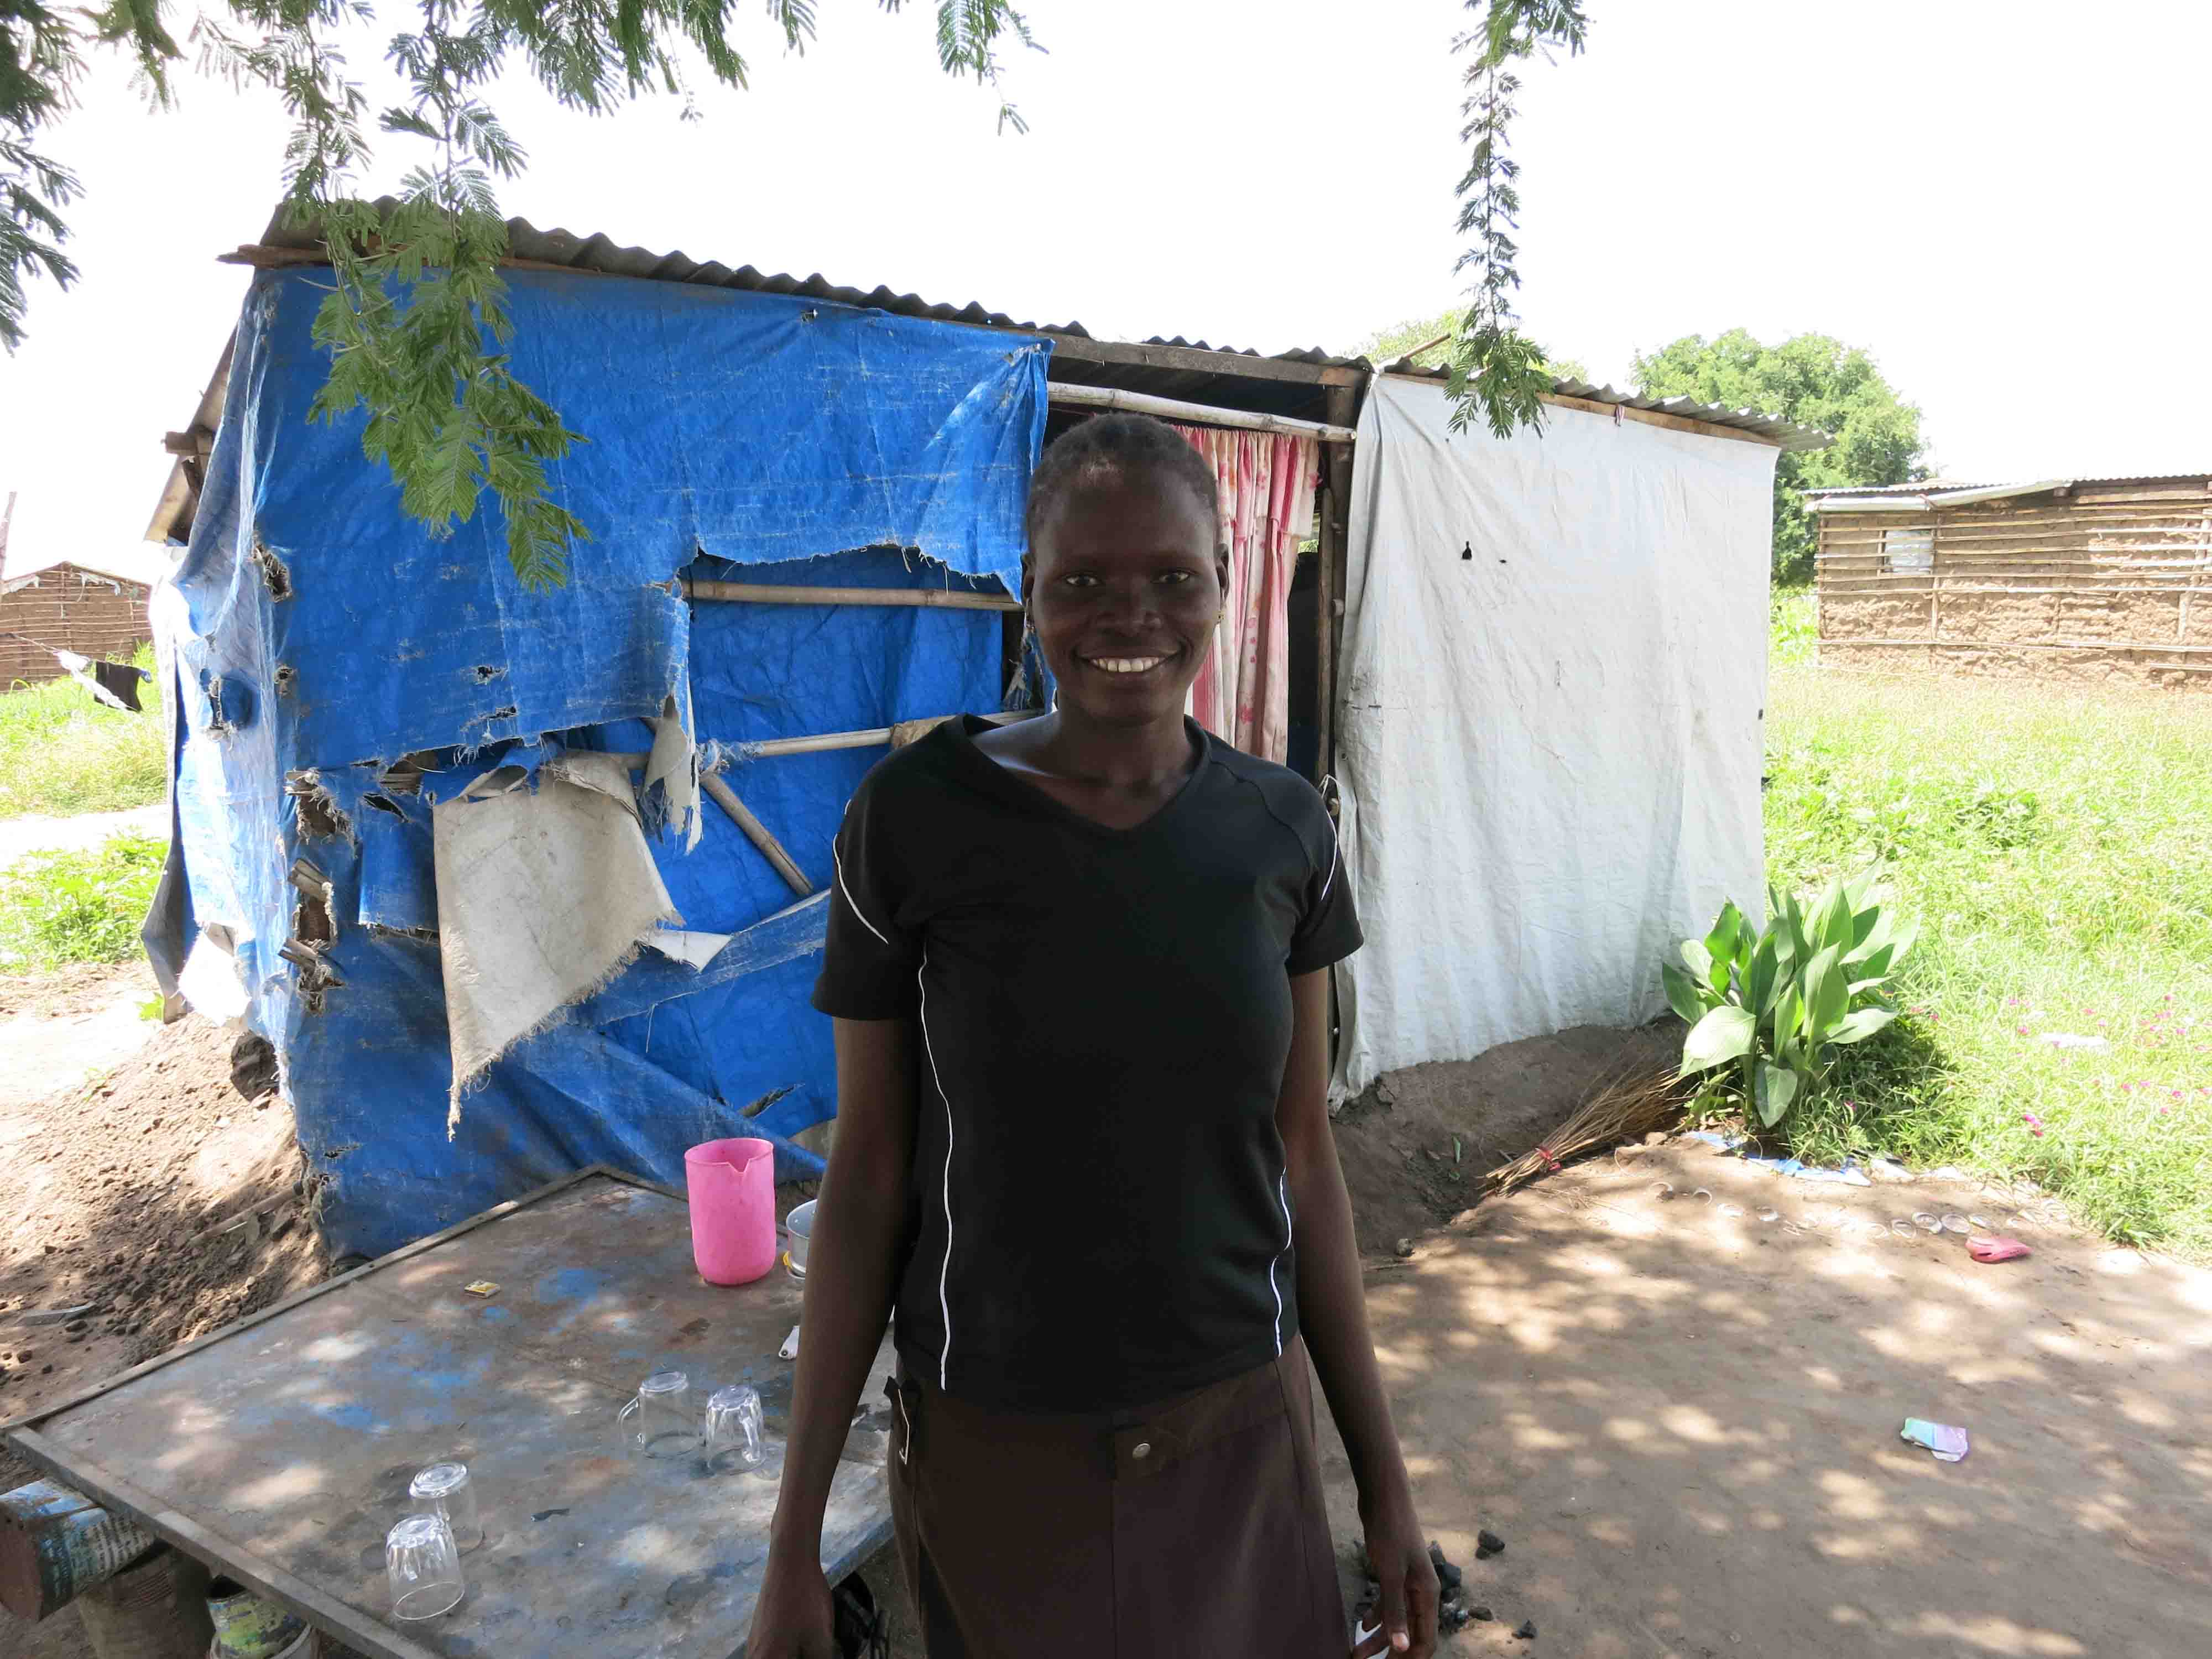 Sura outside her home in Gudele. Credit: Stella Madete/Oxfam